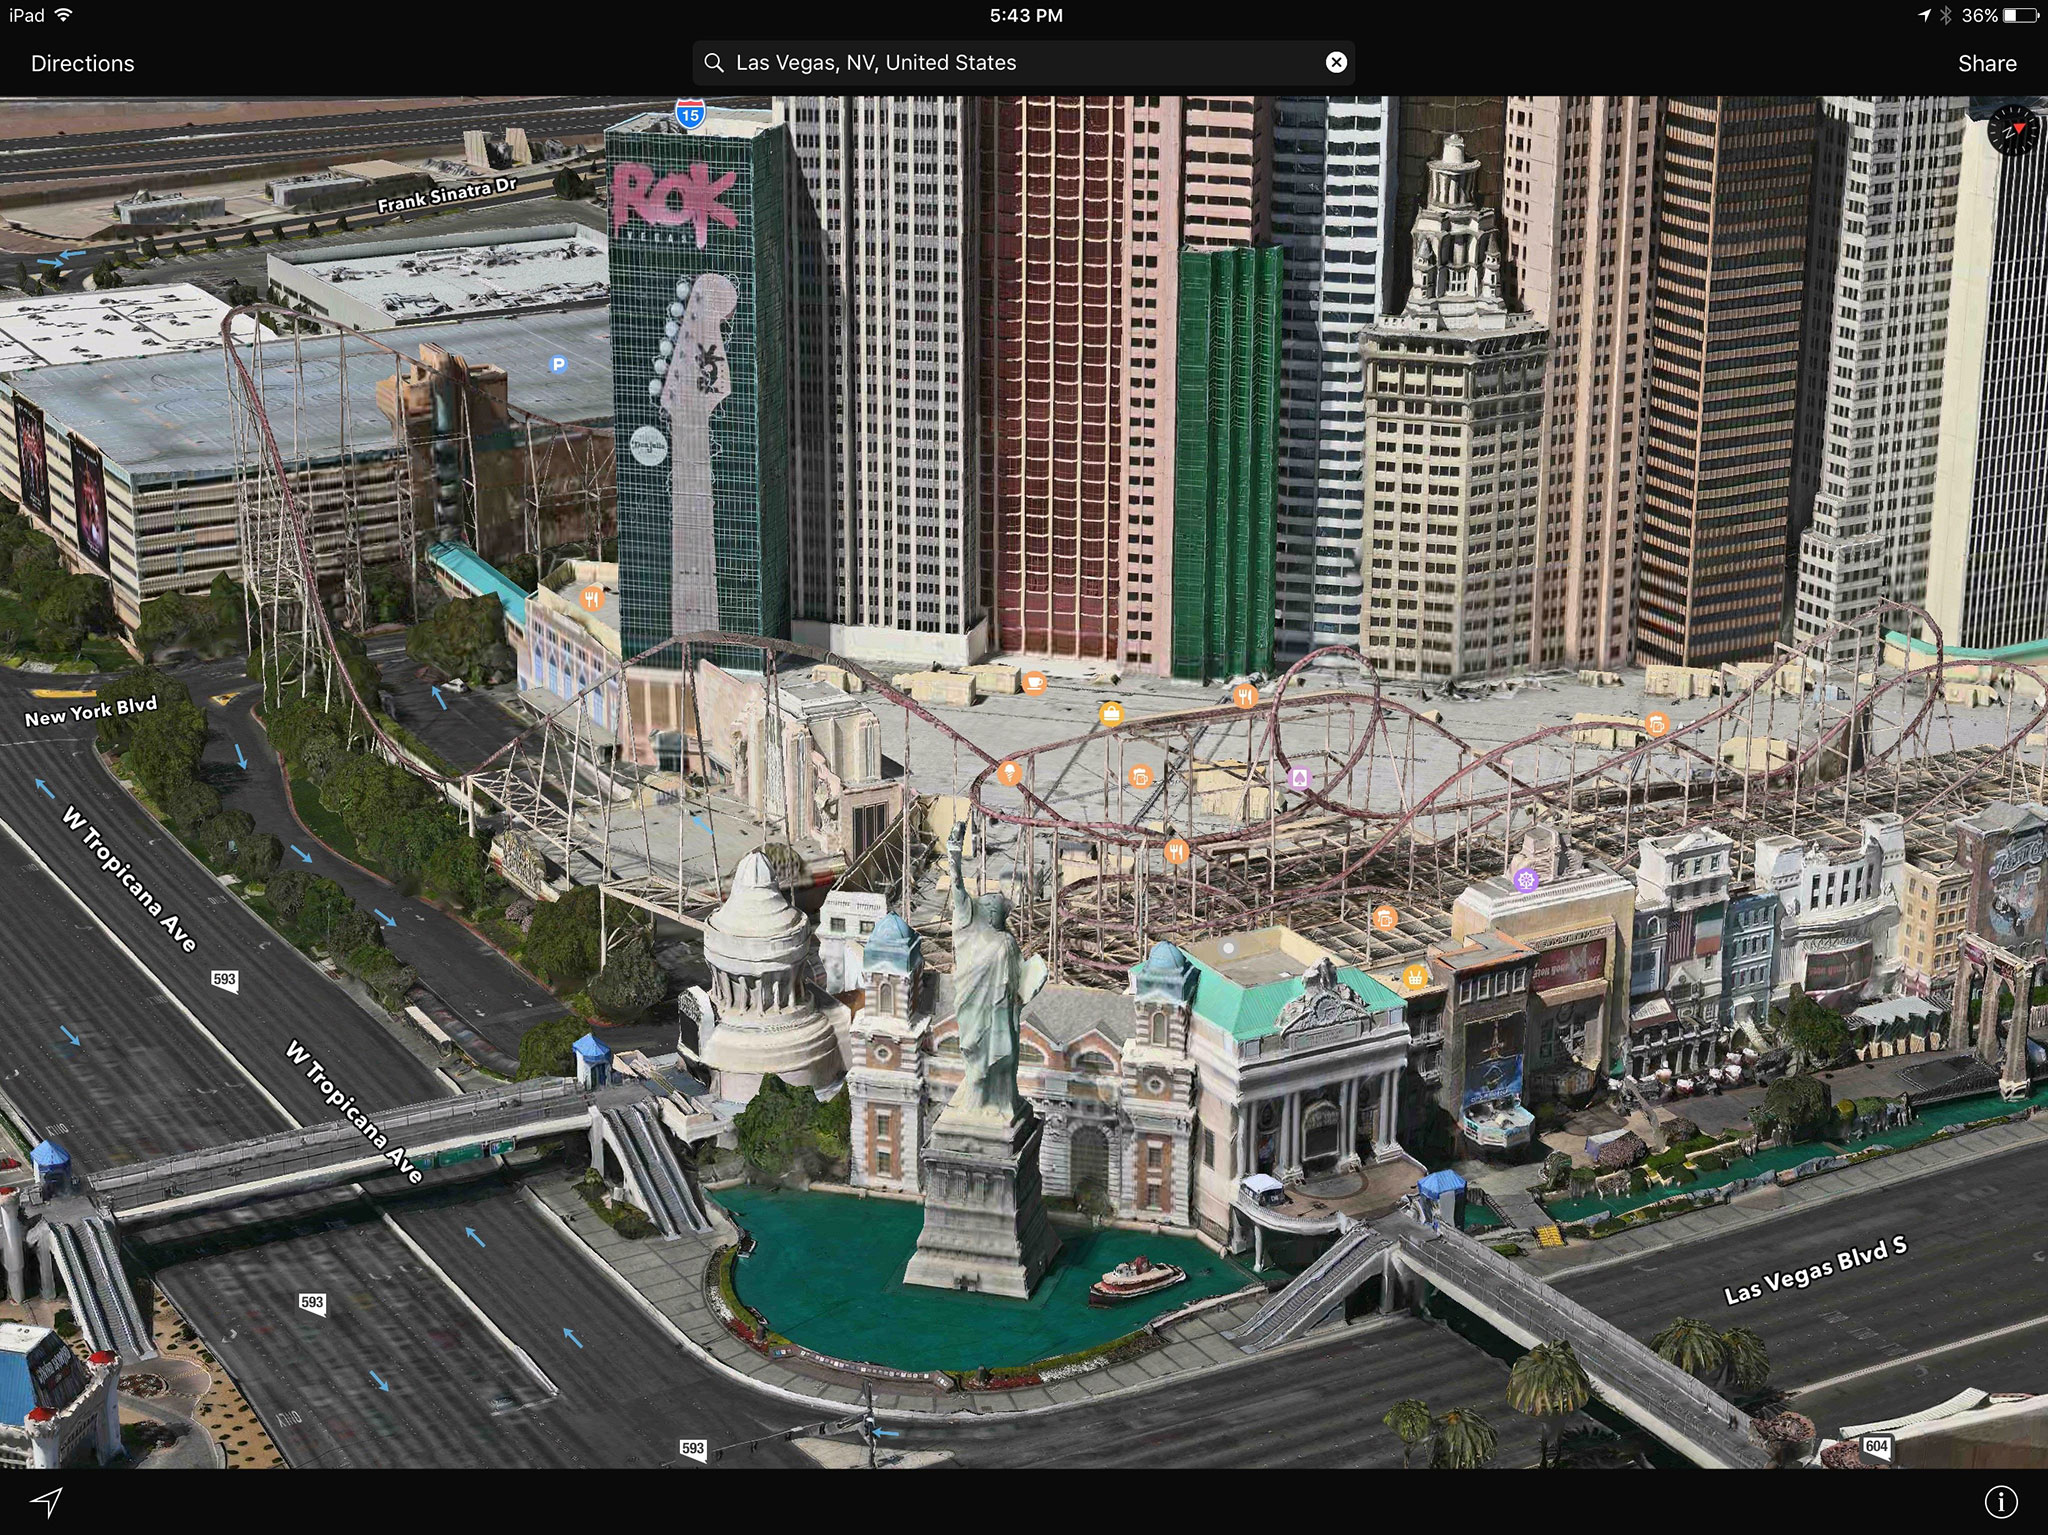 Flying over Vegas using Apple Maps